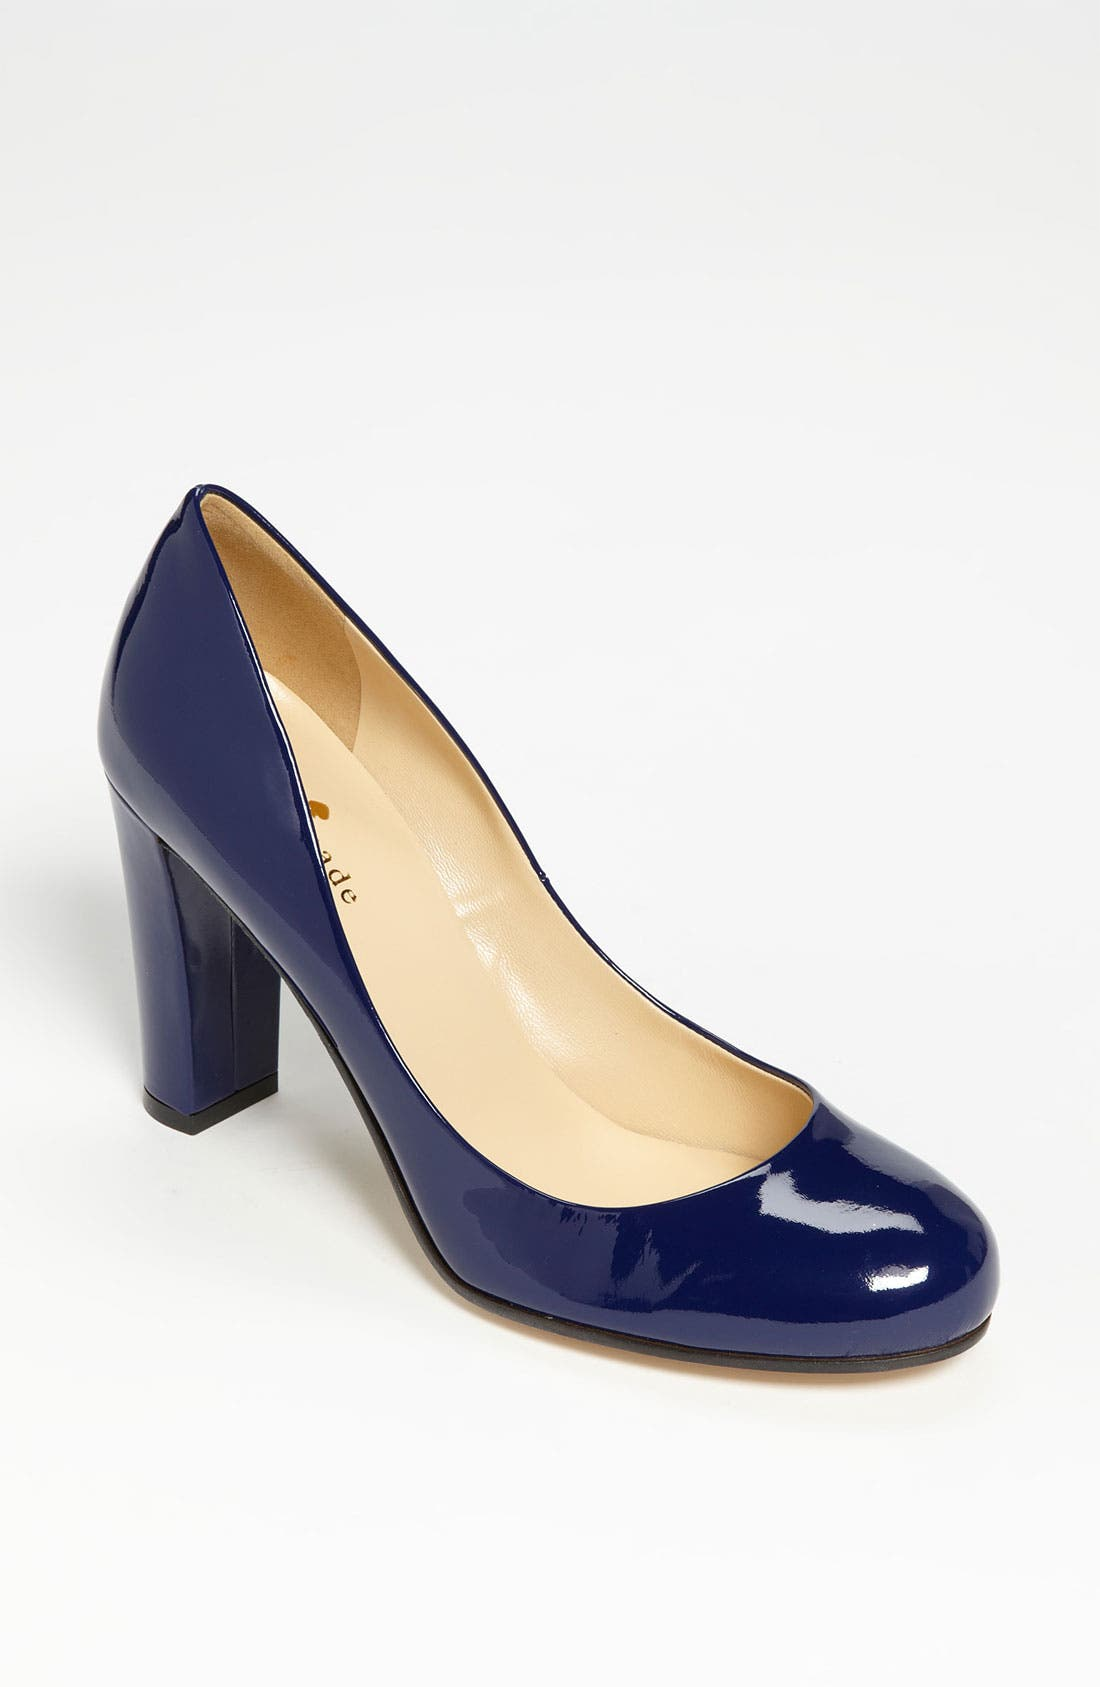 Main Image - kate spade new york 'leslie' pump